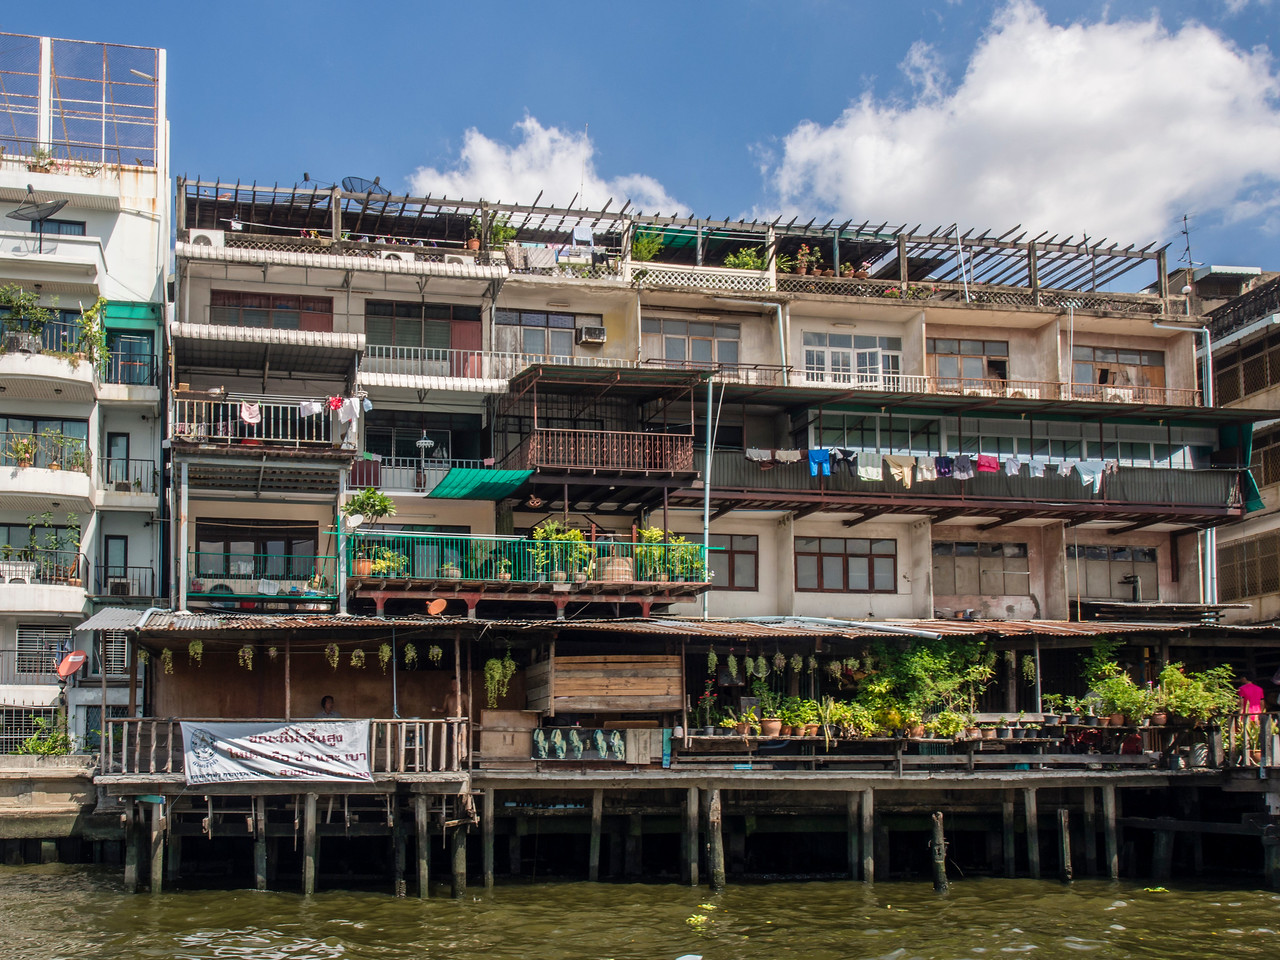 Apartments on the Chao Phraya River, Bangkok